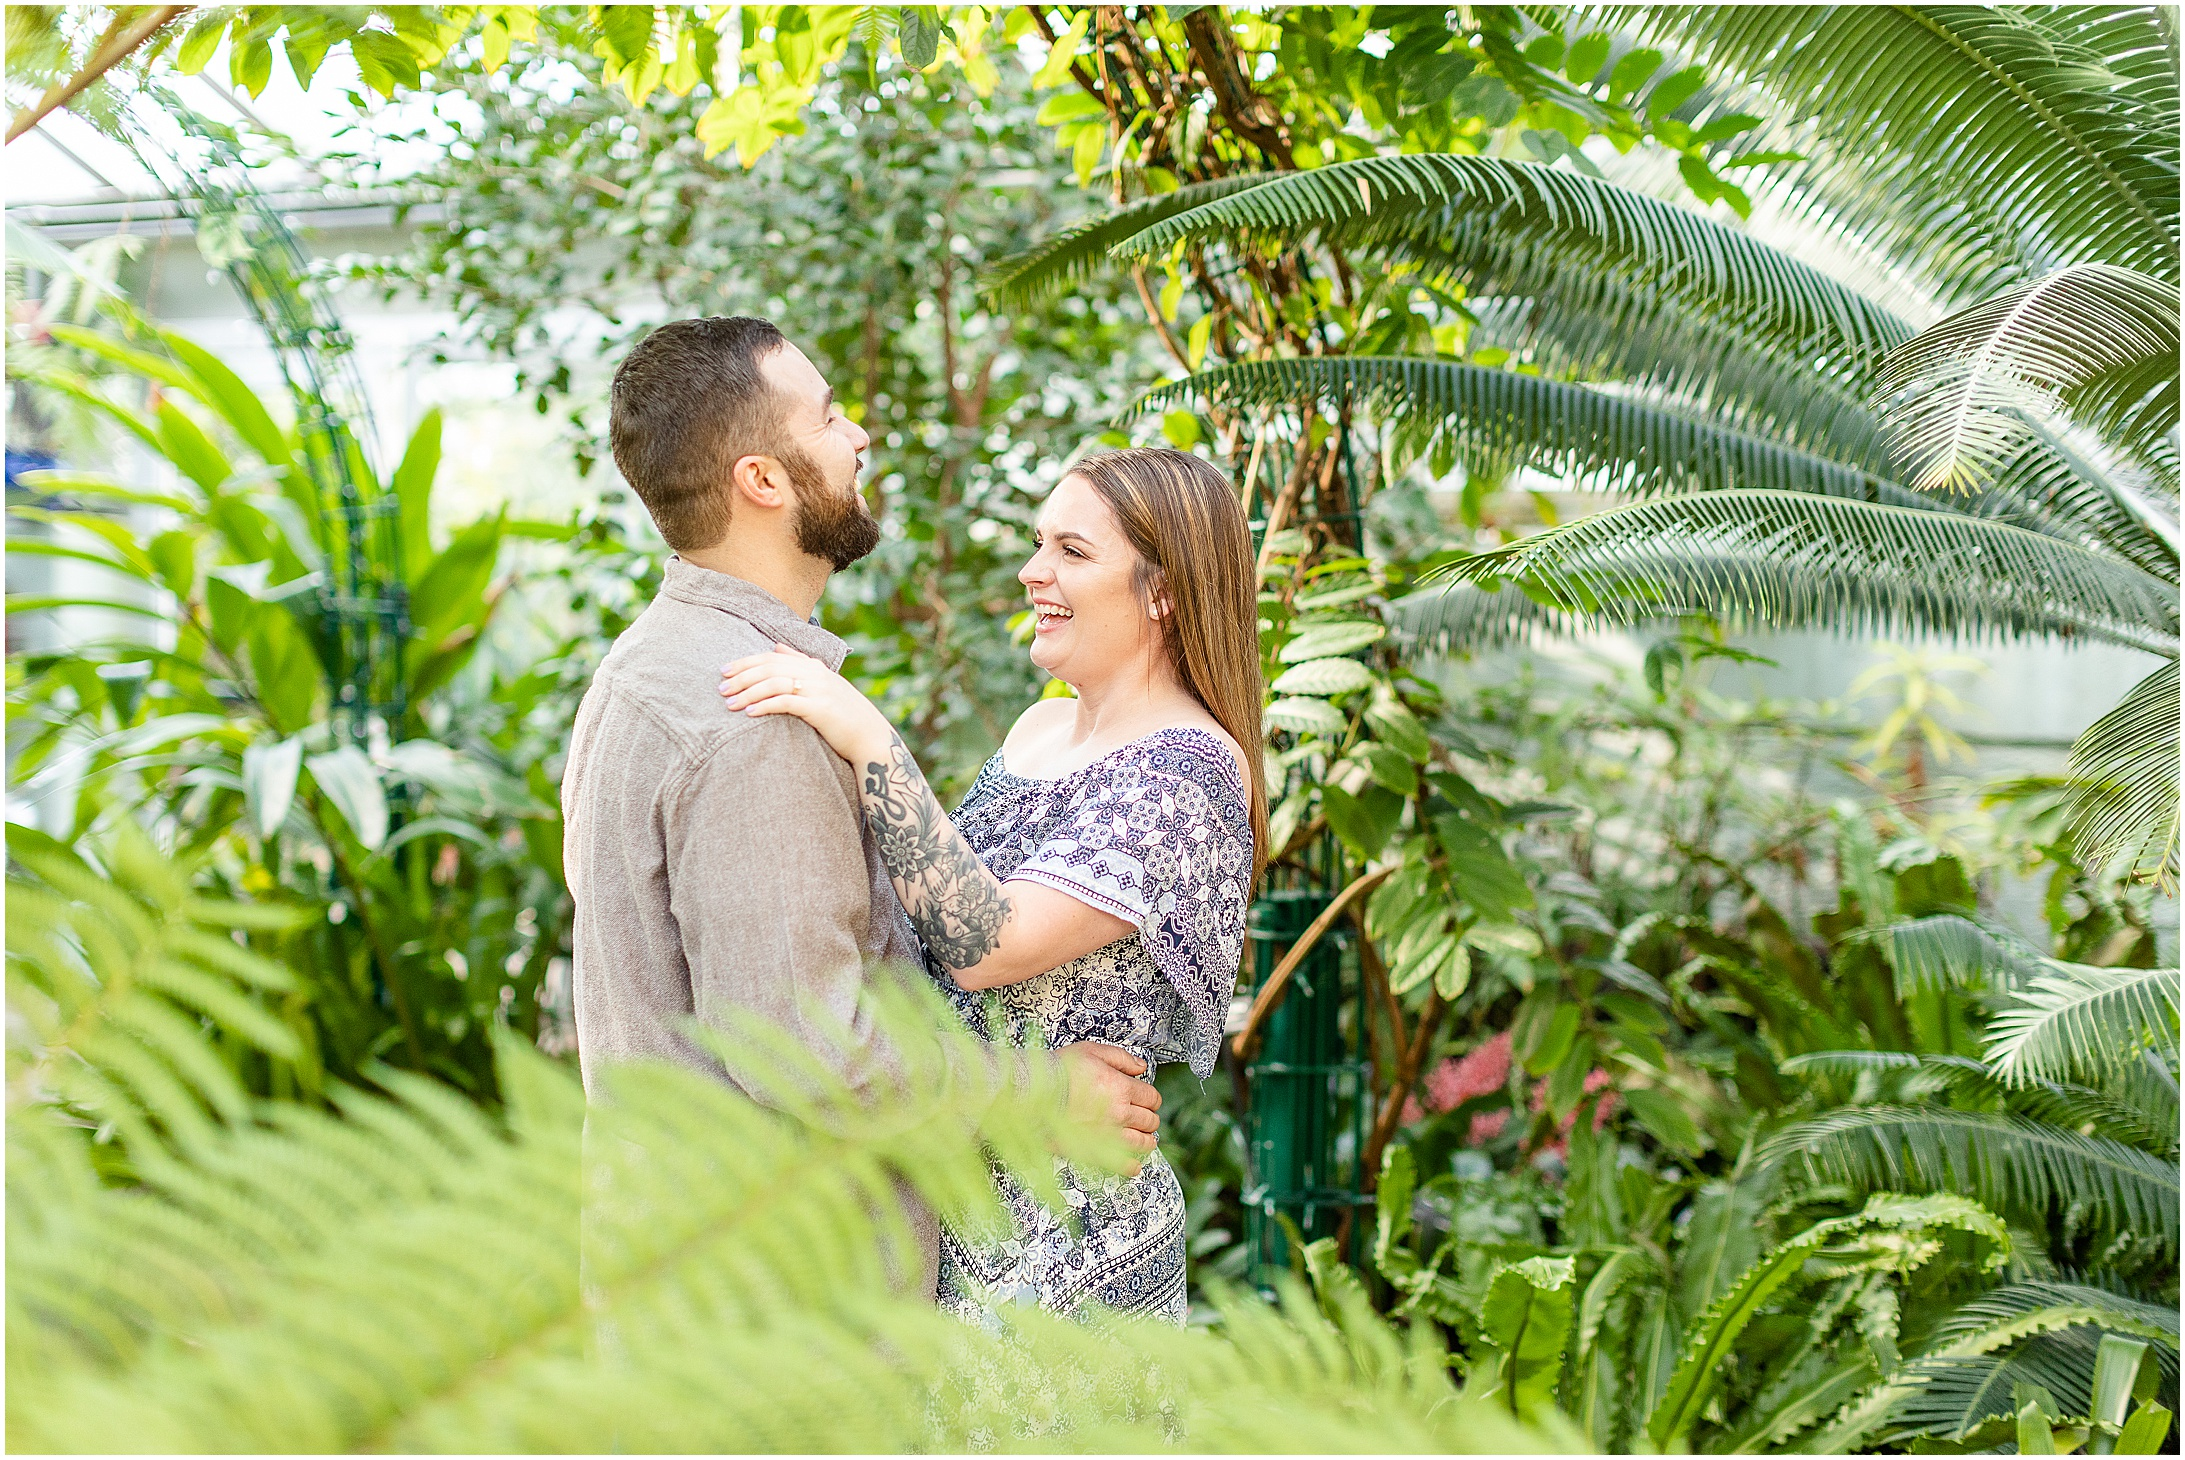 Rawlings-Conservatory-Engagement-Photos_0282.jpg